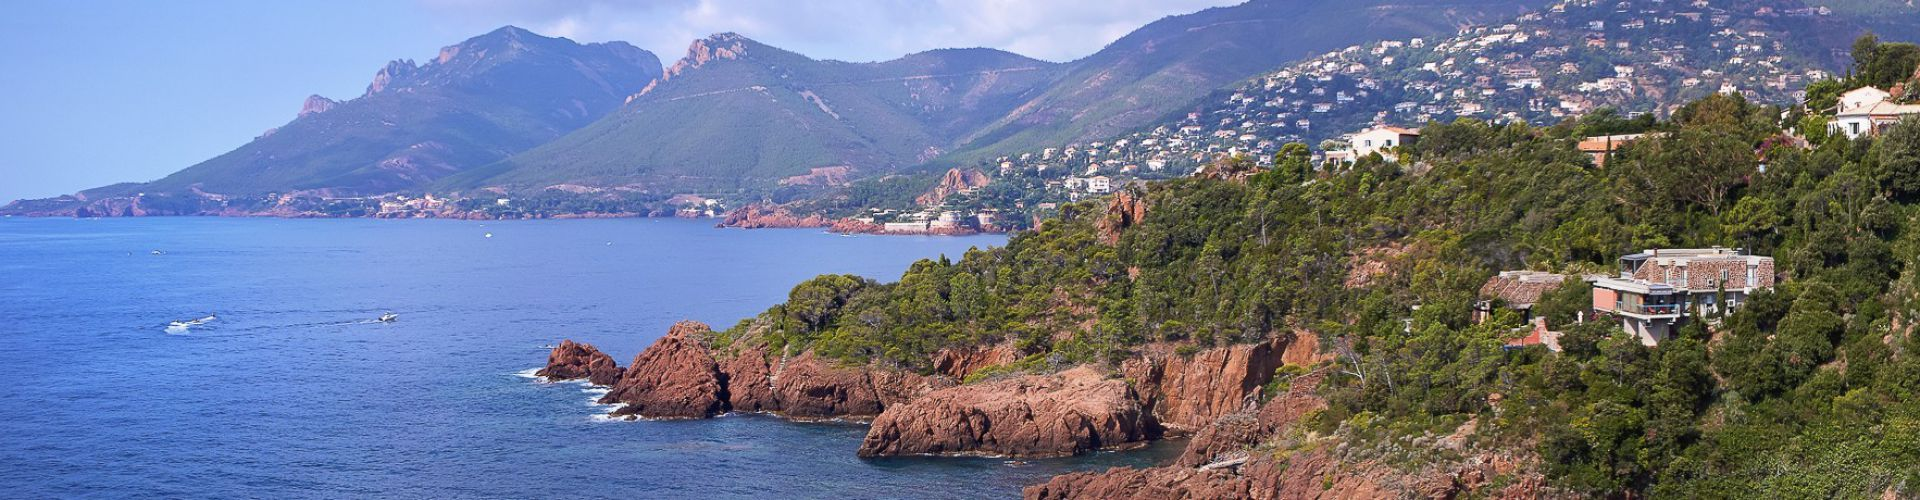 Les roches rouges de l'Esterel, un secteur authentique entre Cannes et Saint Raphael - Côte d'Azur Sotheby's International realty